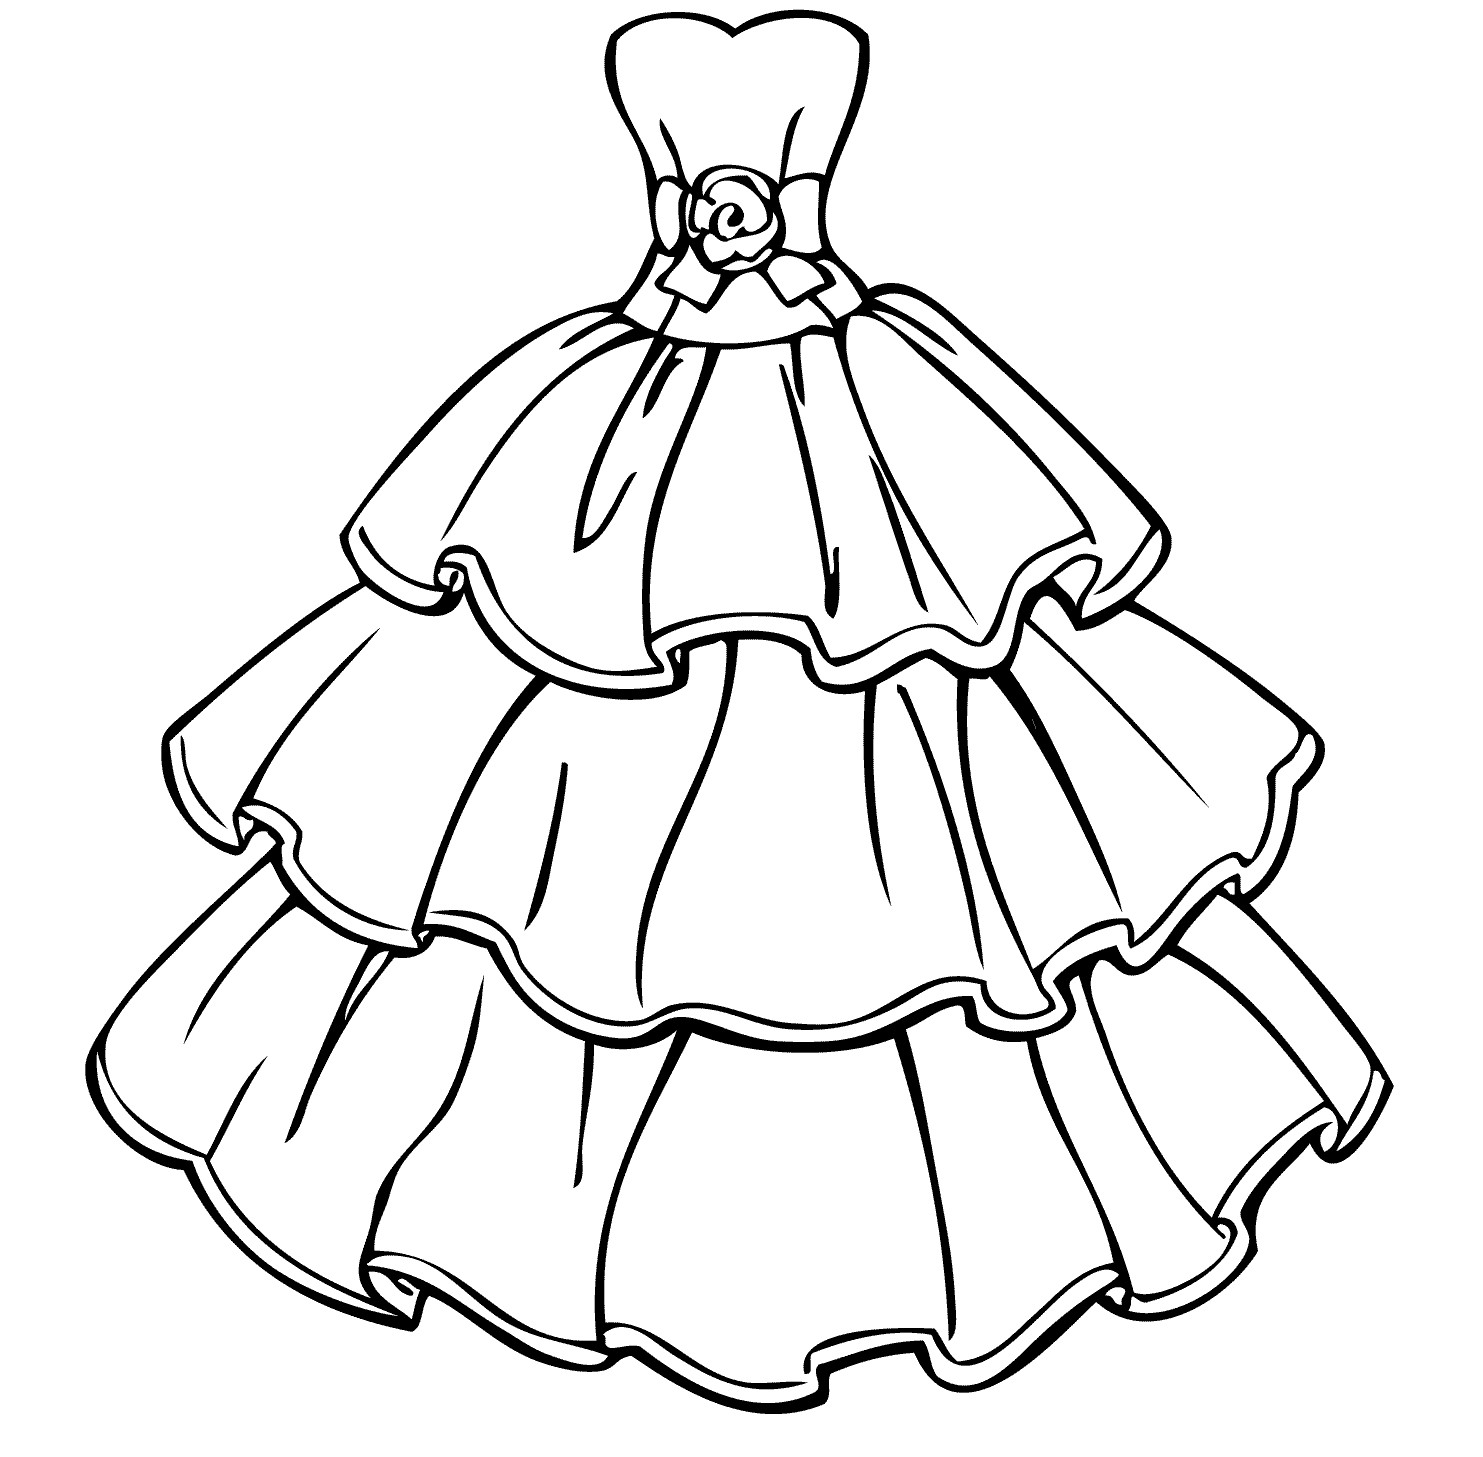 dress colouring pages light dress coloring page for girls printable free colouring dress pages